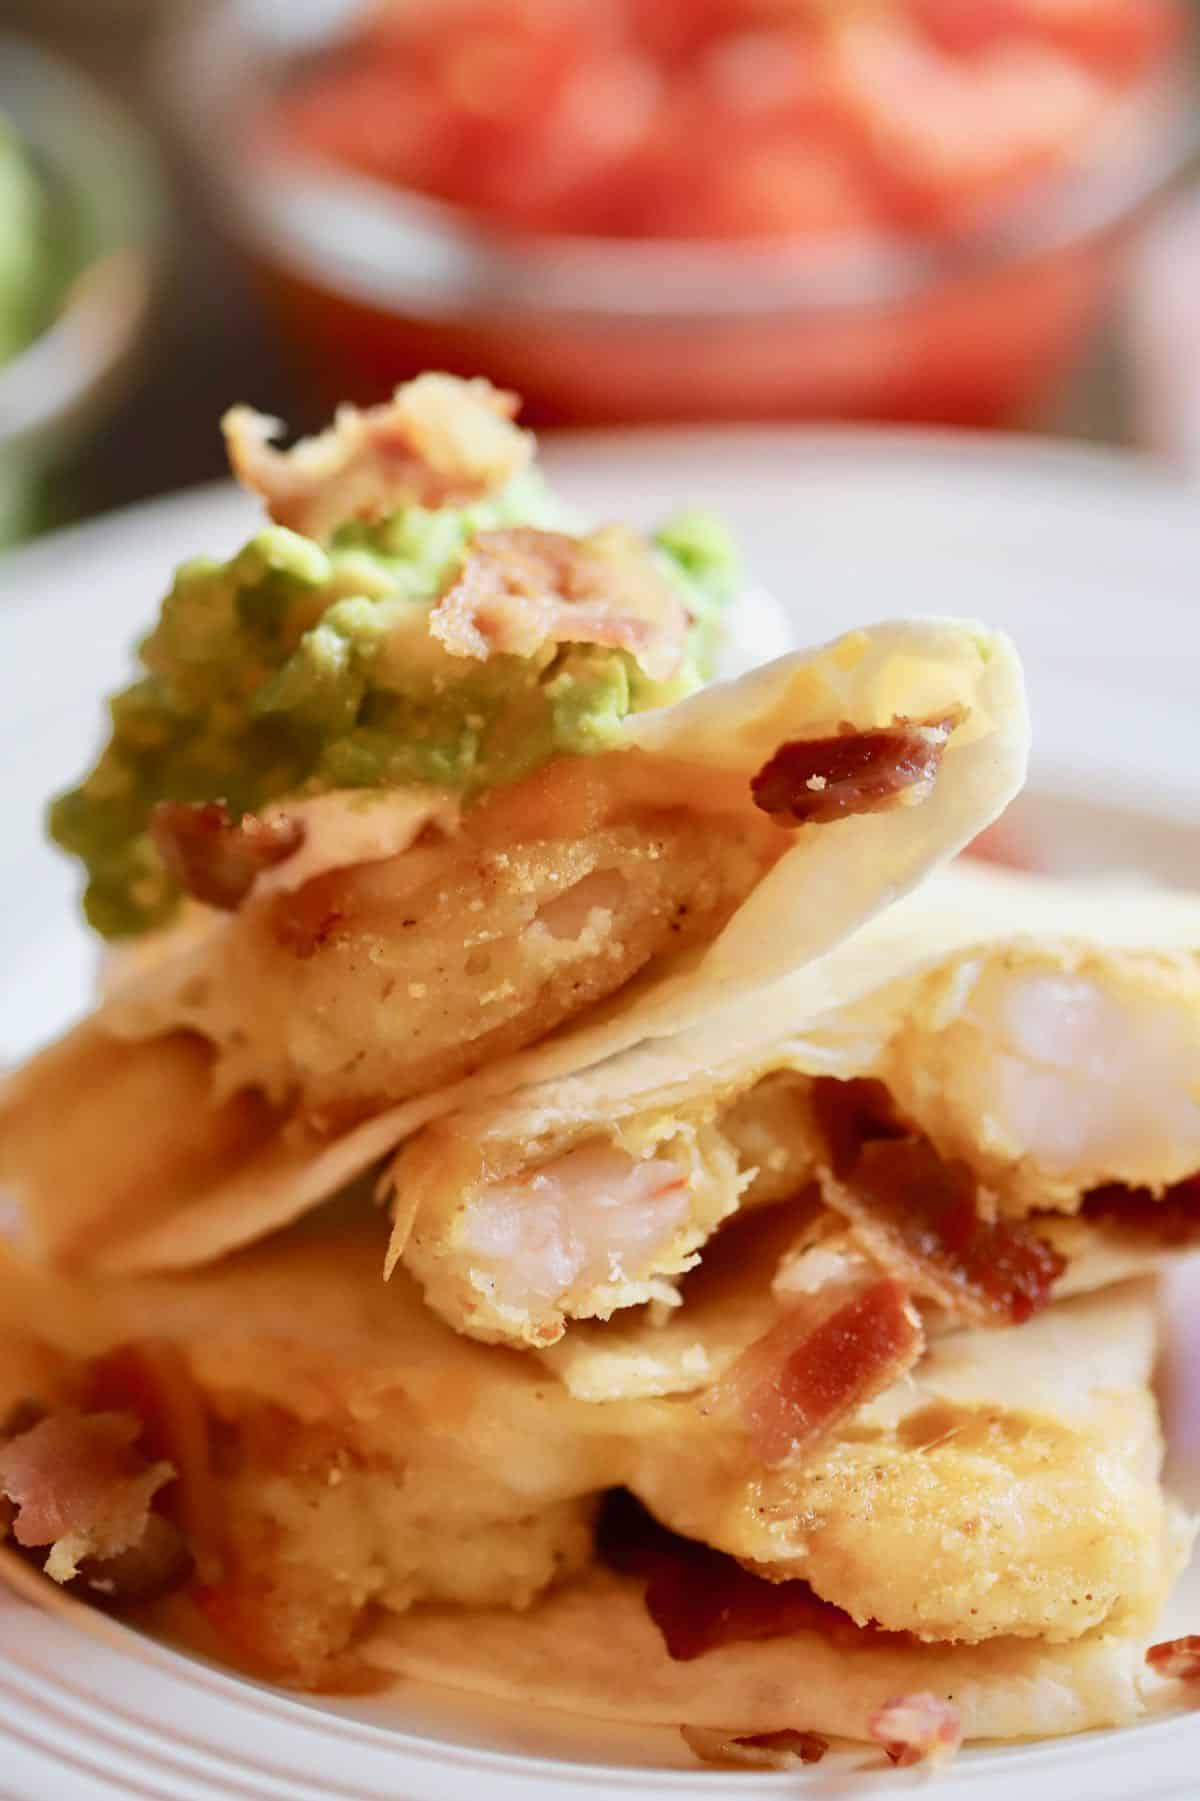 Shrimp quesadilla with bacon stacked on top of each other.